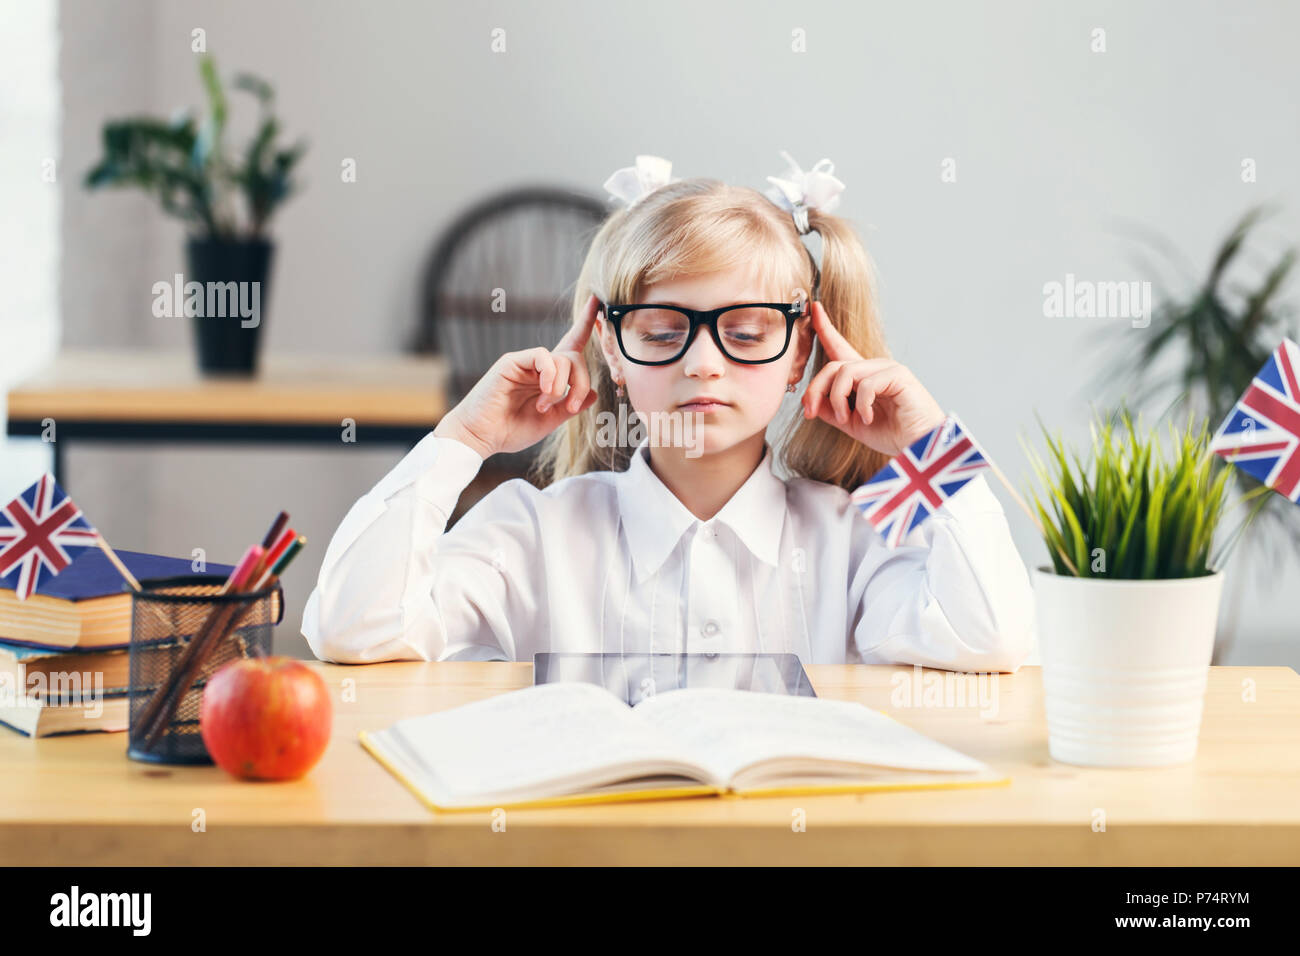 concentrated girl learning english